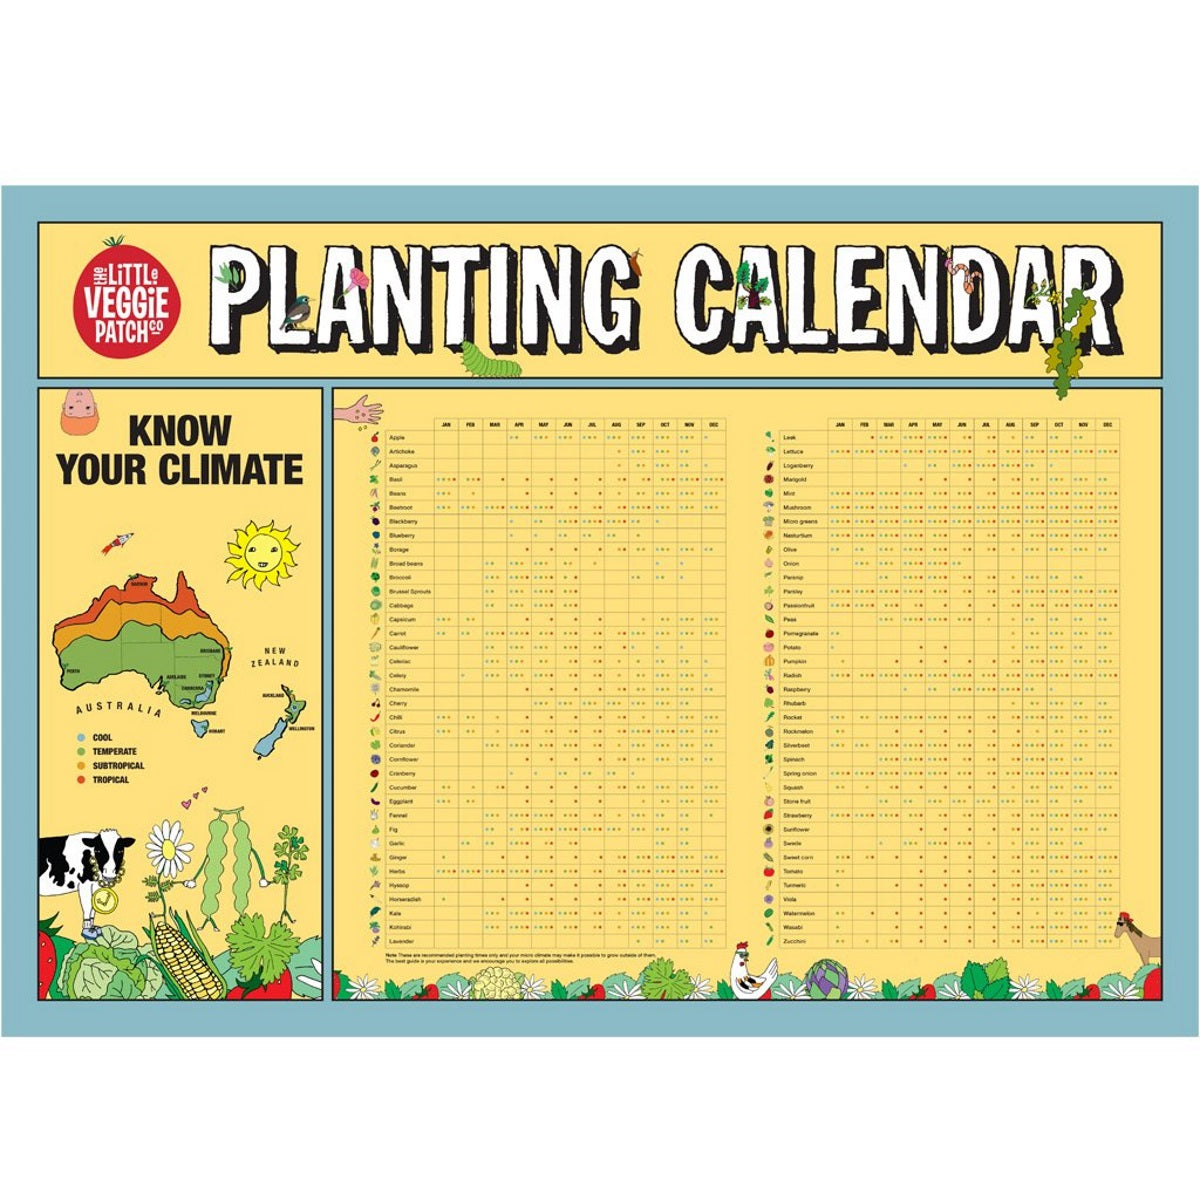 Planting Calendar - Posters - Throw Some Seeds - Australian gardening gifts and eco products online!